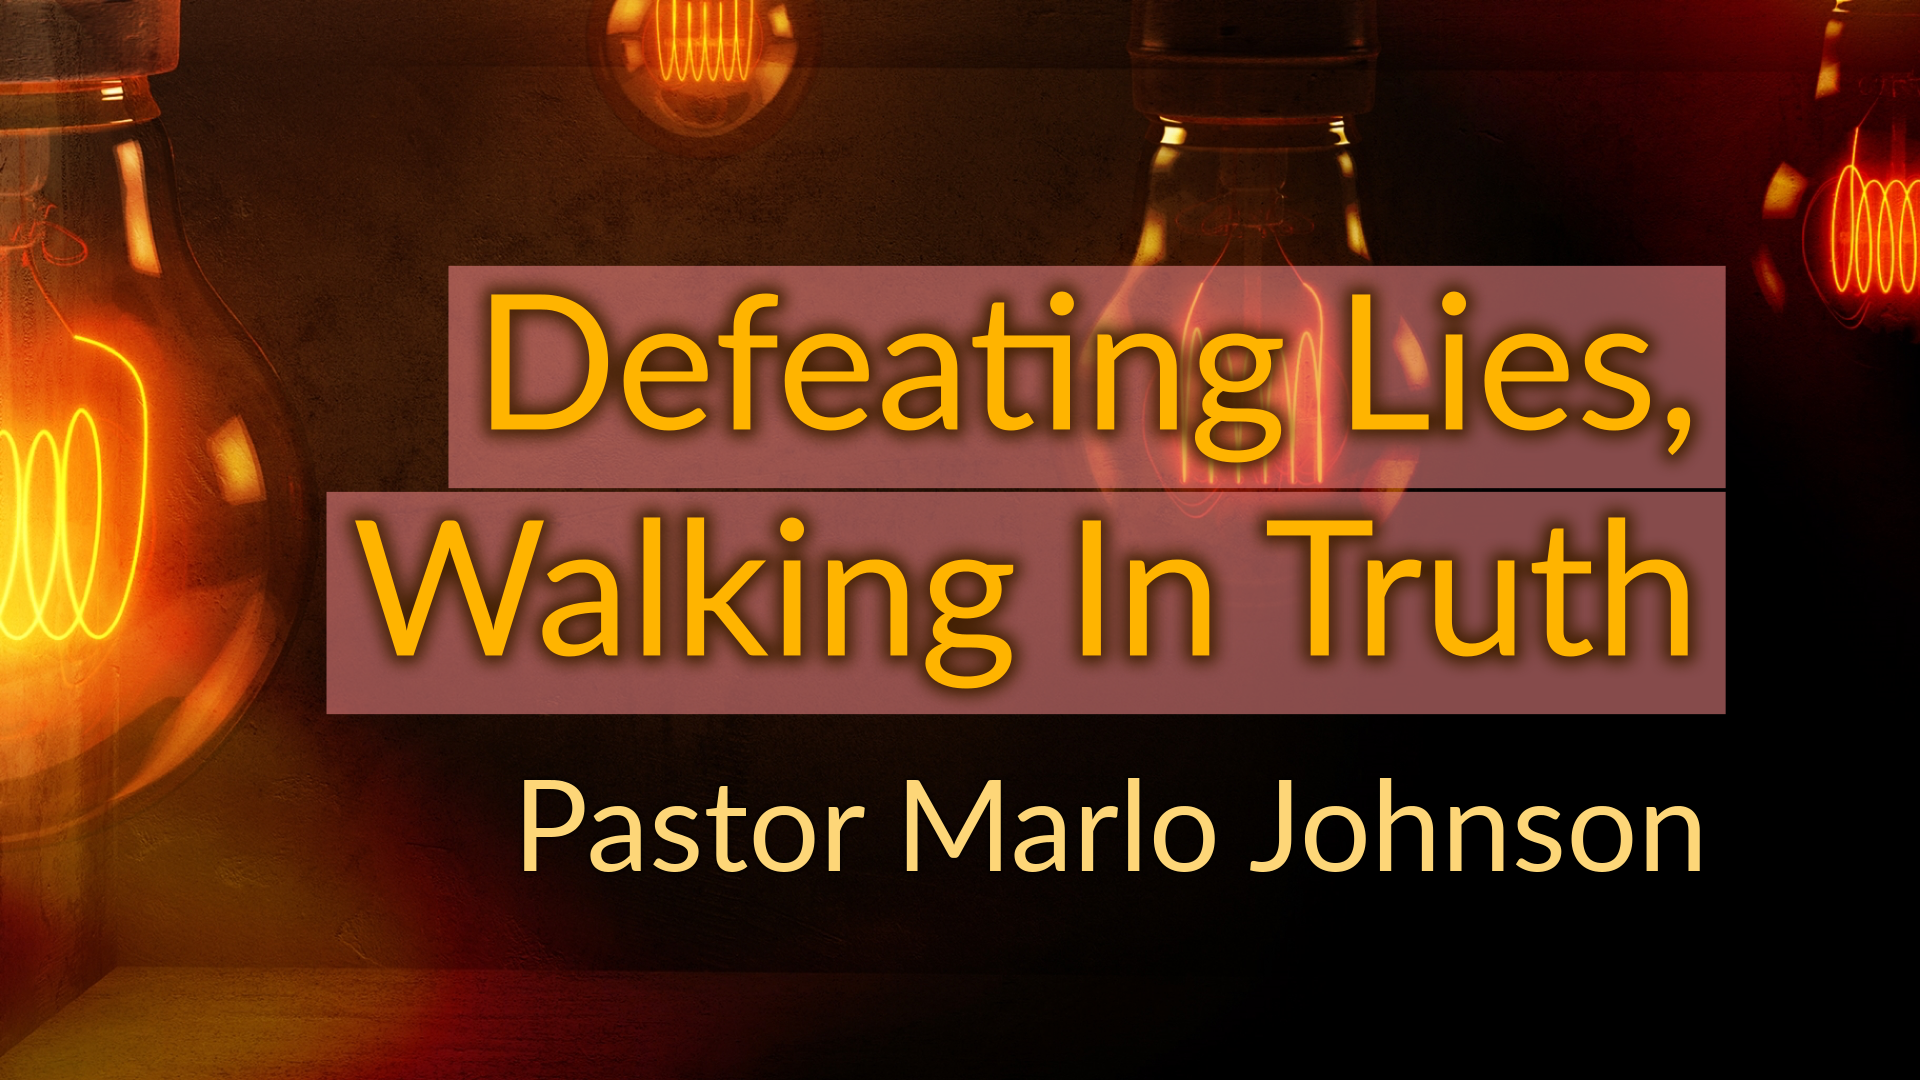 Defeating Lies, Walking In Truth - Pt. 2